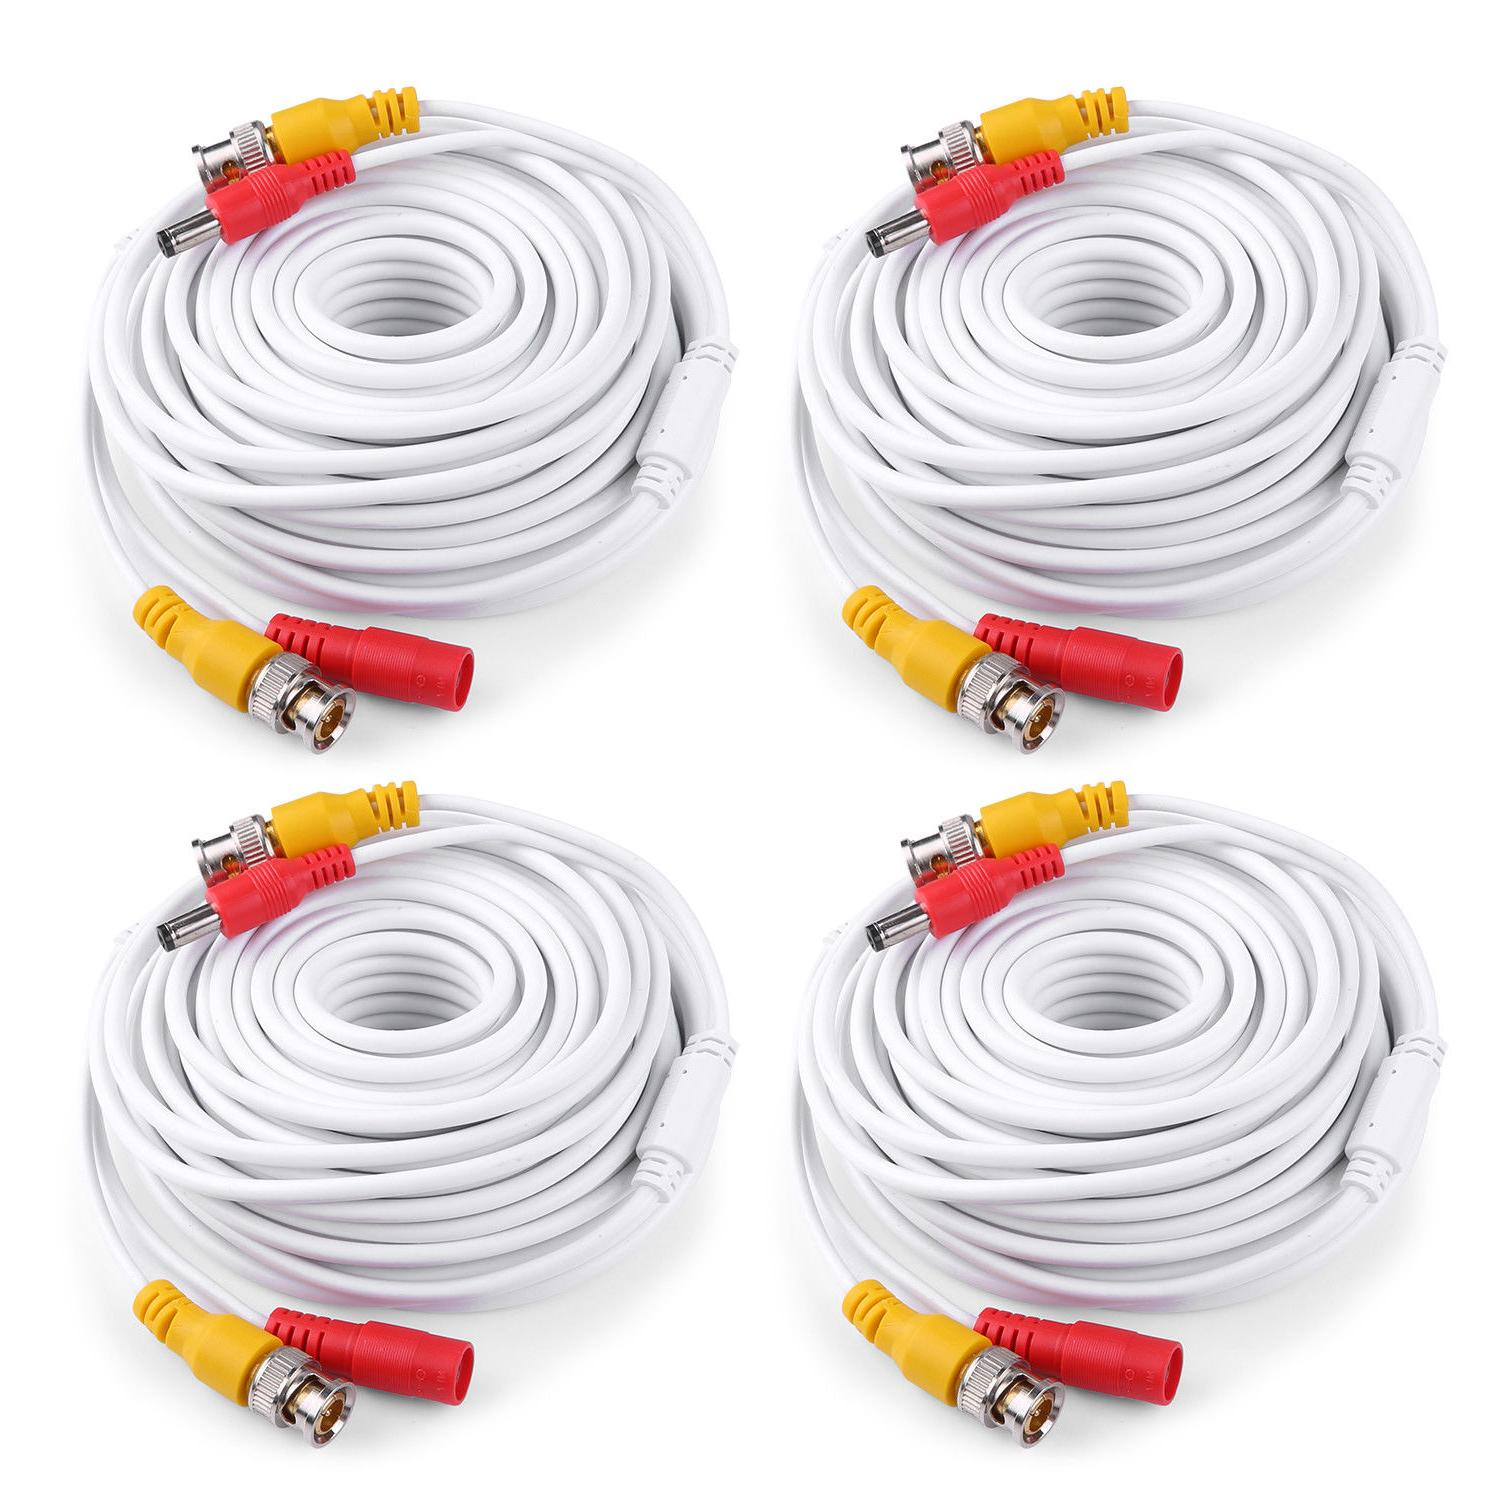 ANNKE 25/50/60/100/150ft Power RCA for Security Camera System